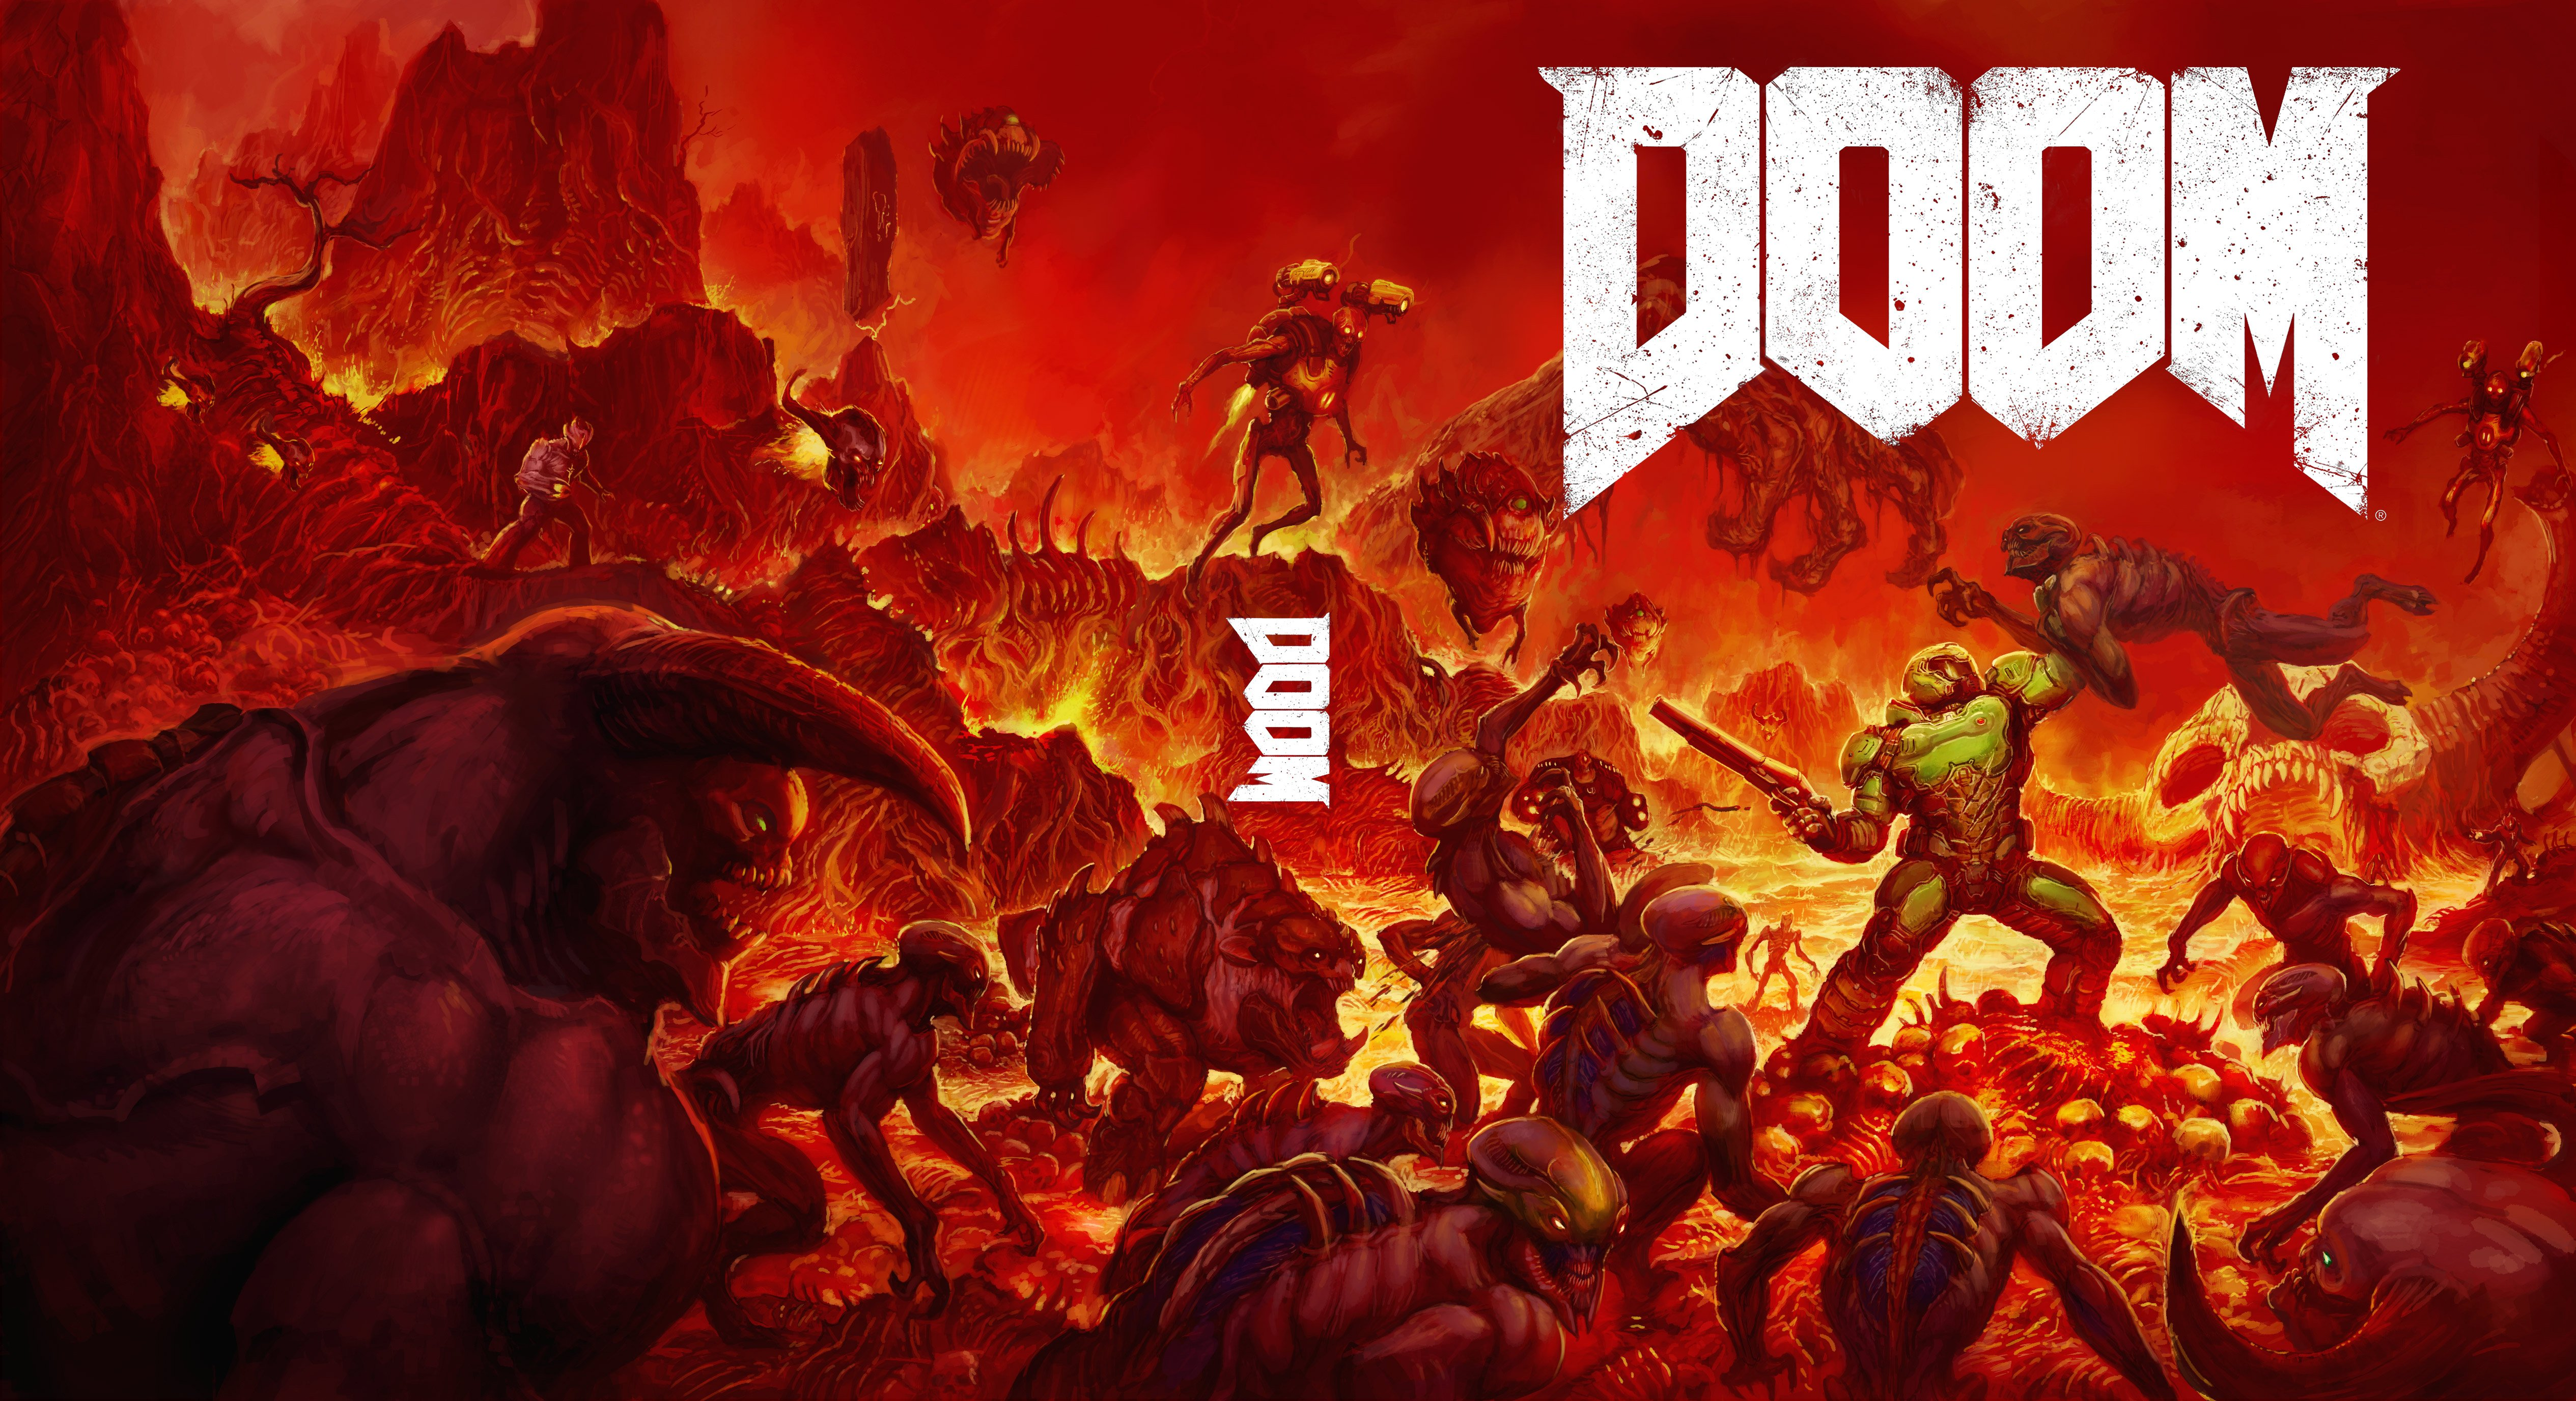 Watch How DOOM's Cover Art Was Designed In This Reverse Time-Lapse